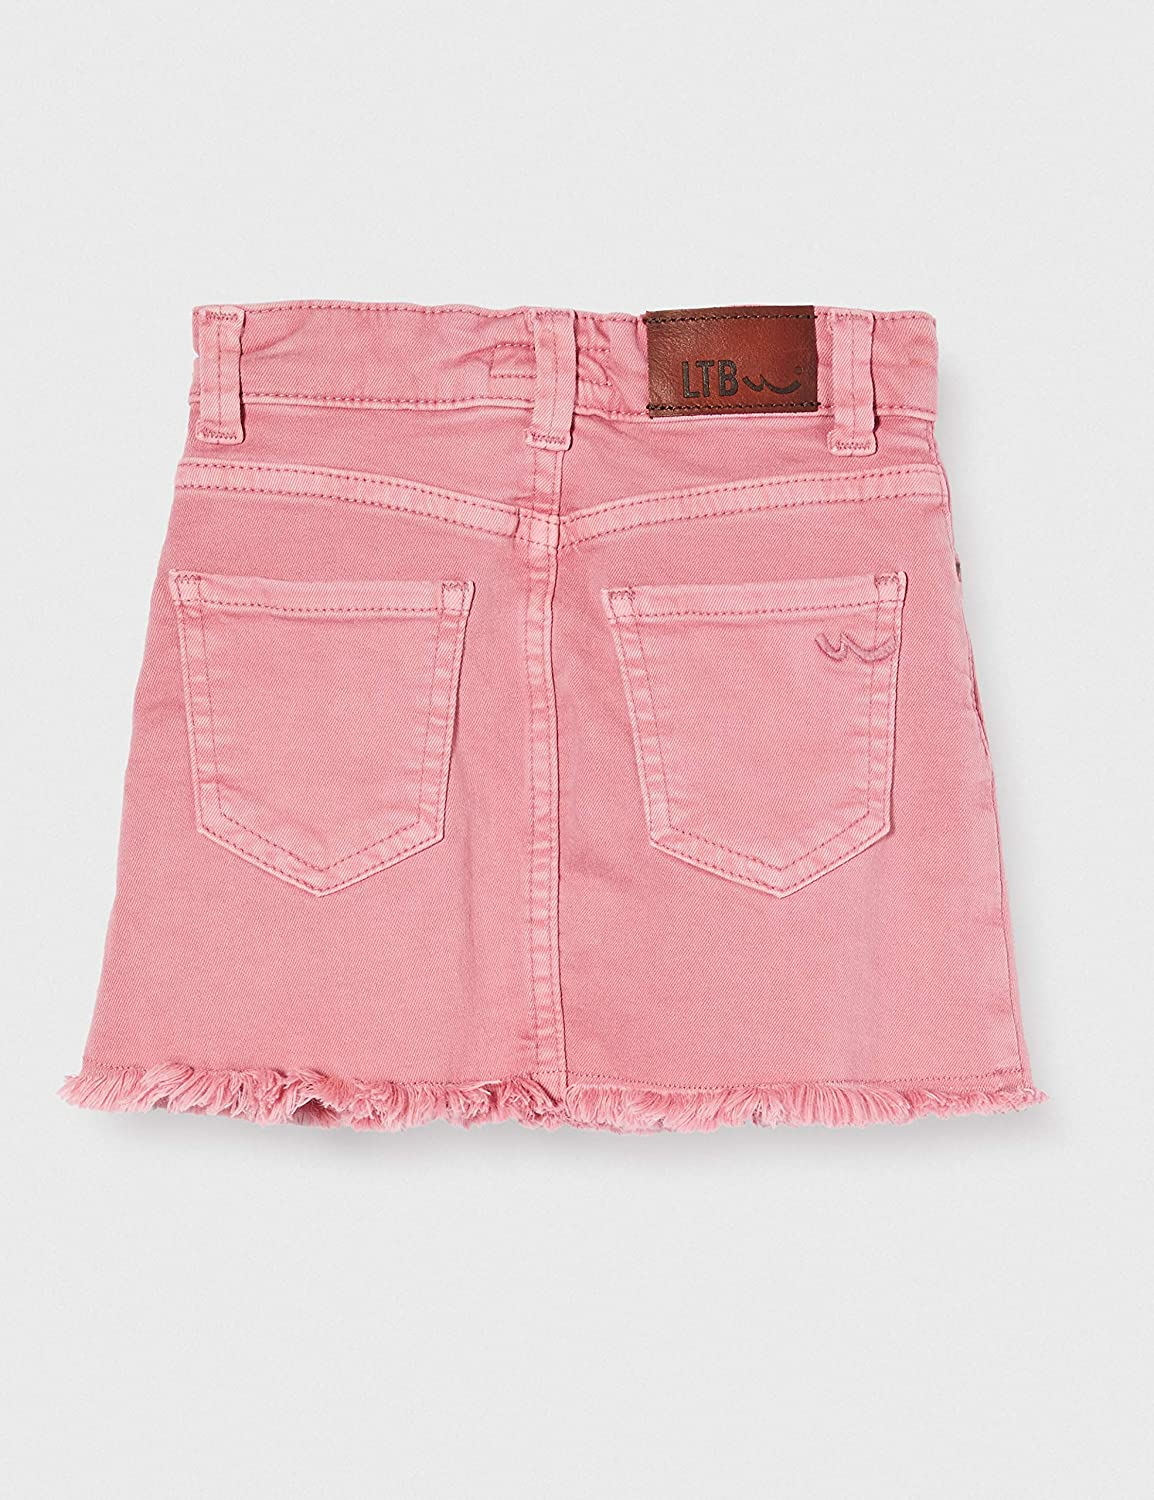 LTB Jeans Lime G Gonna Bambina